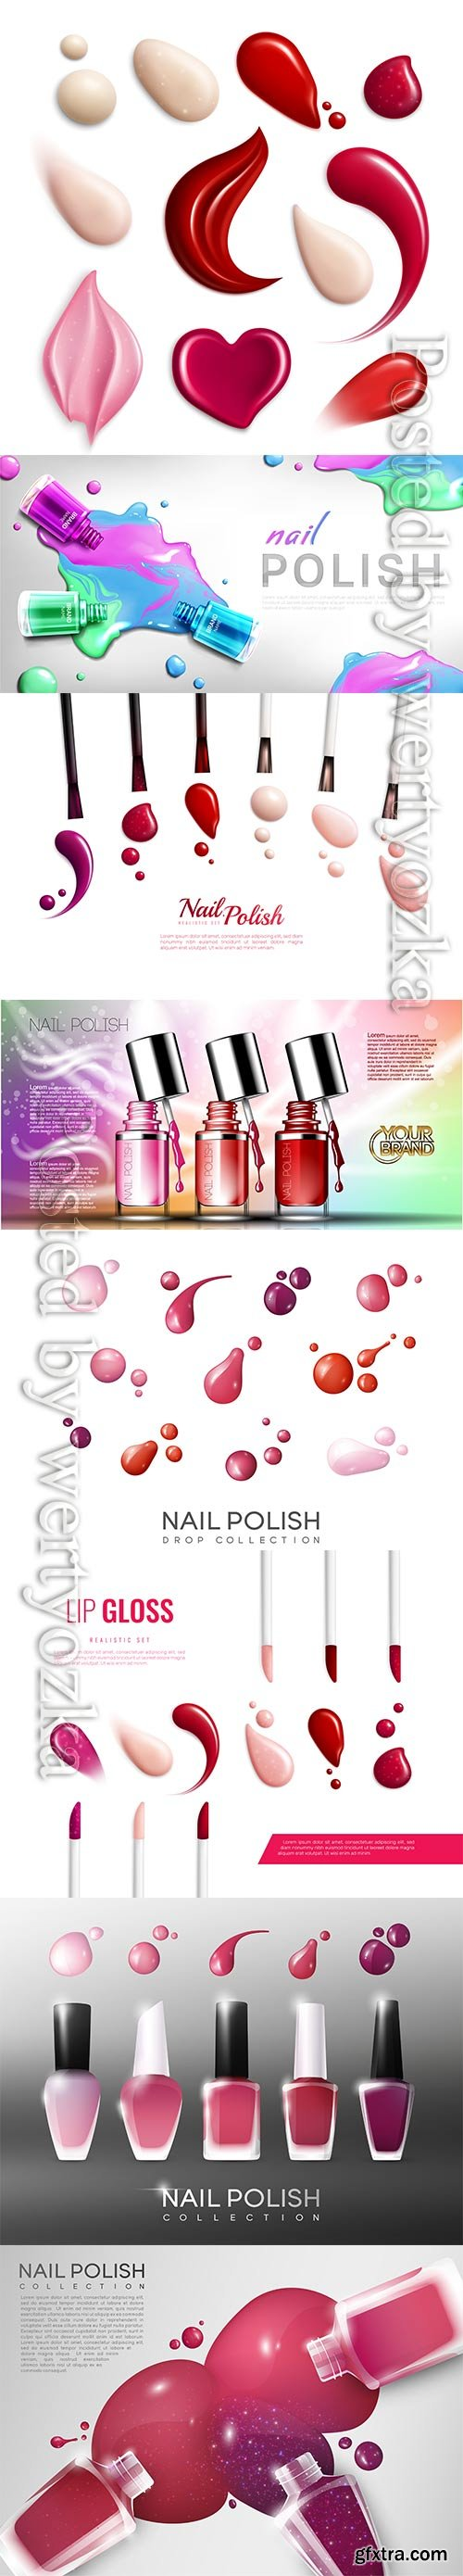 Realistic nail polish collection vector template